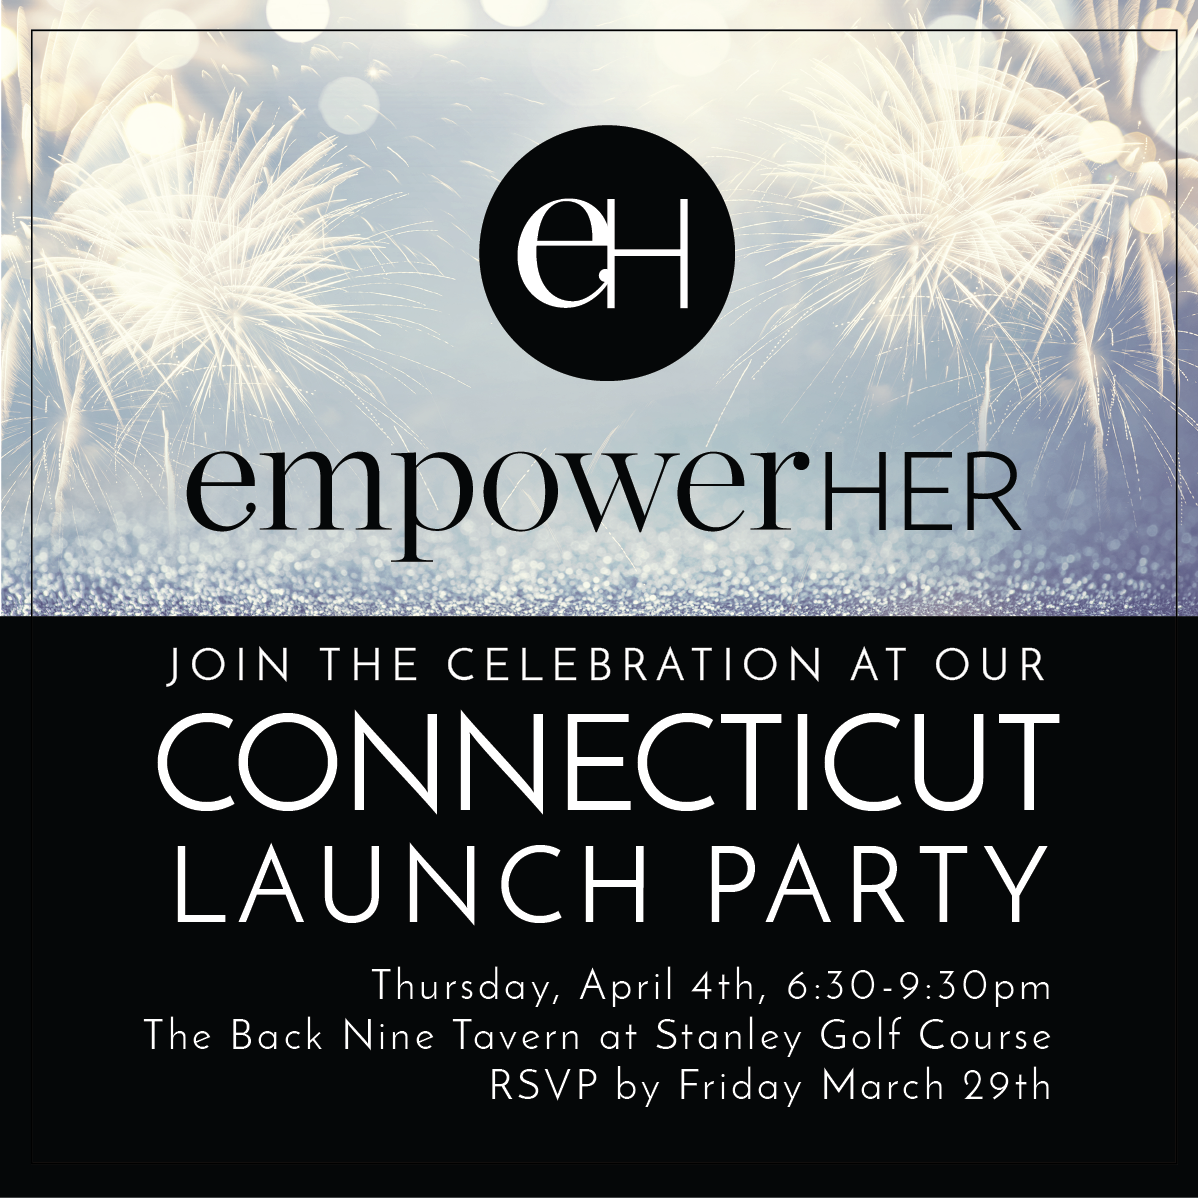 EH-CT LAUNCH PARTY 2019.png